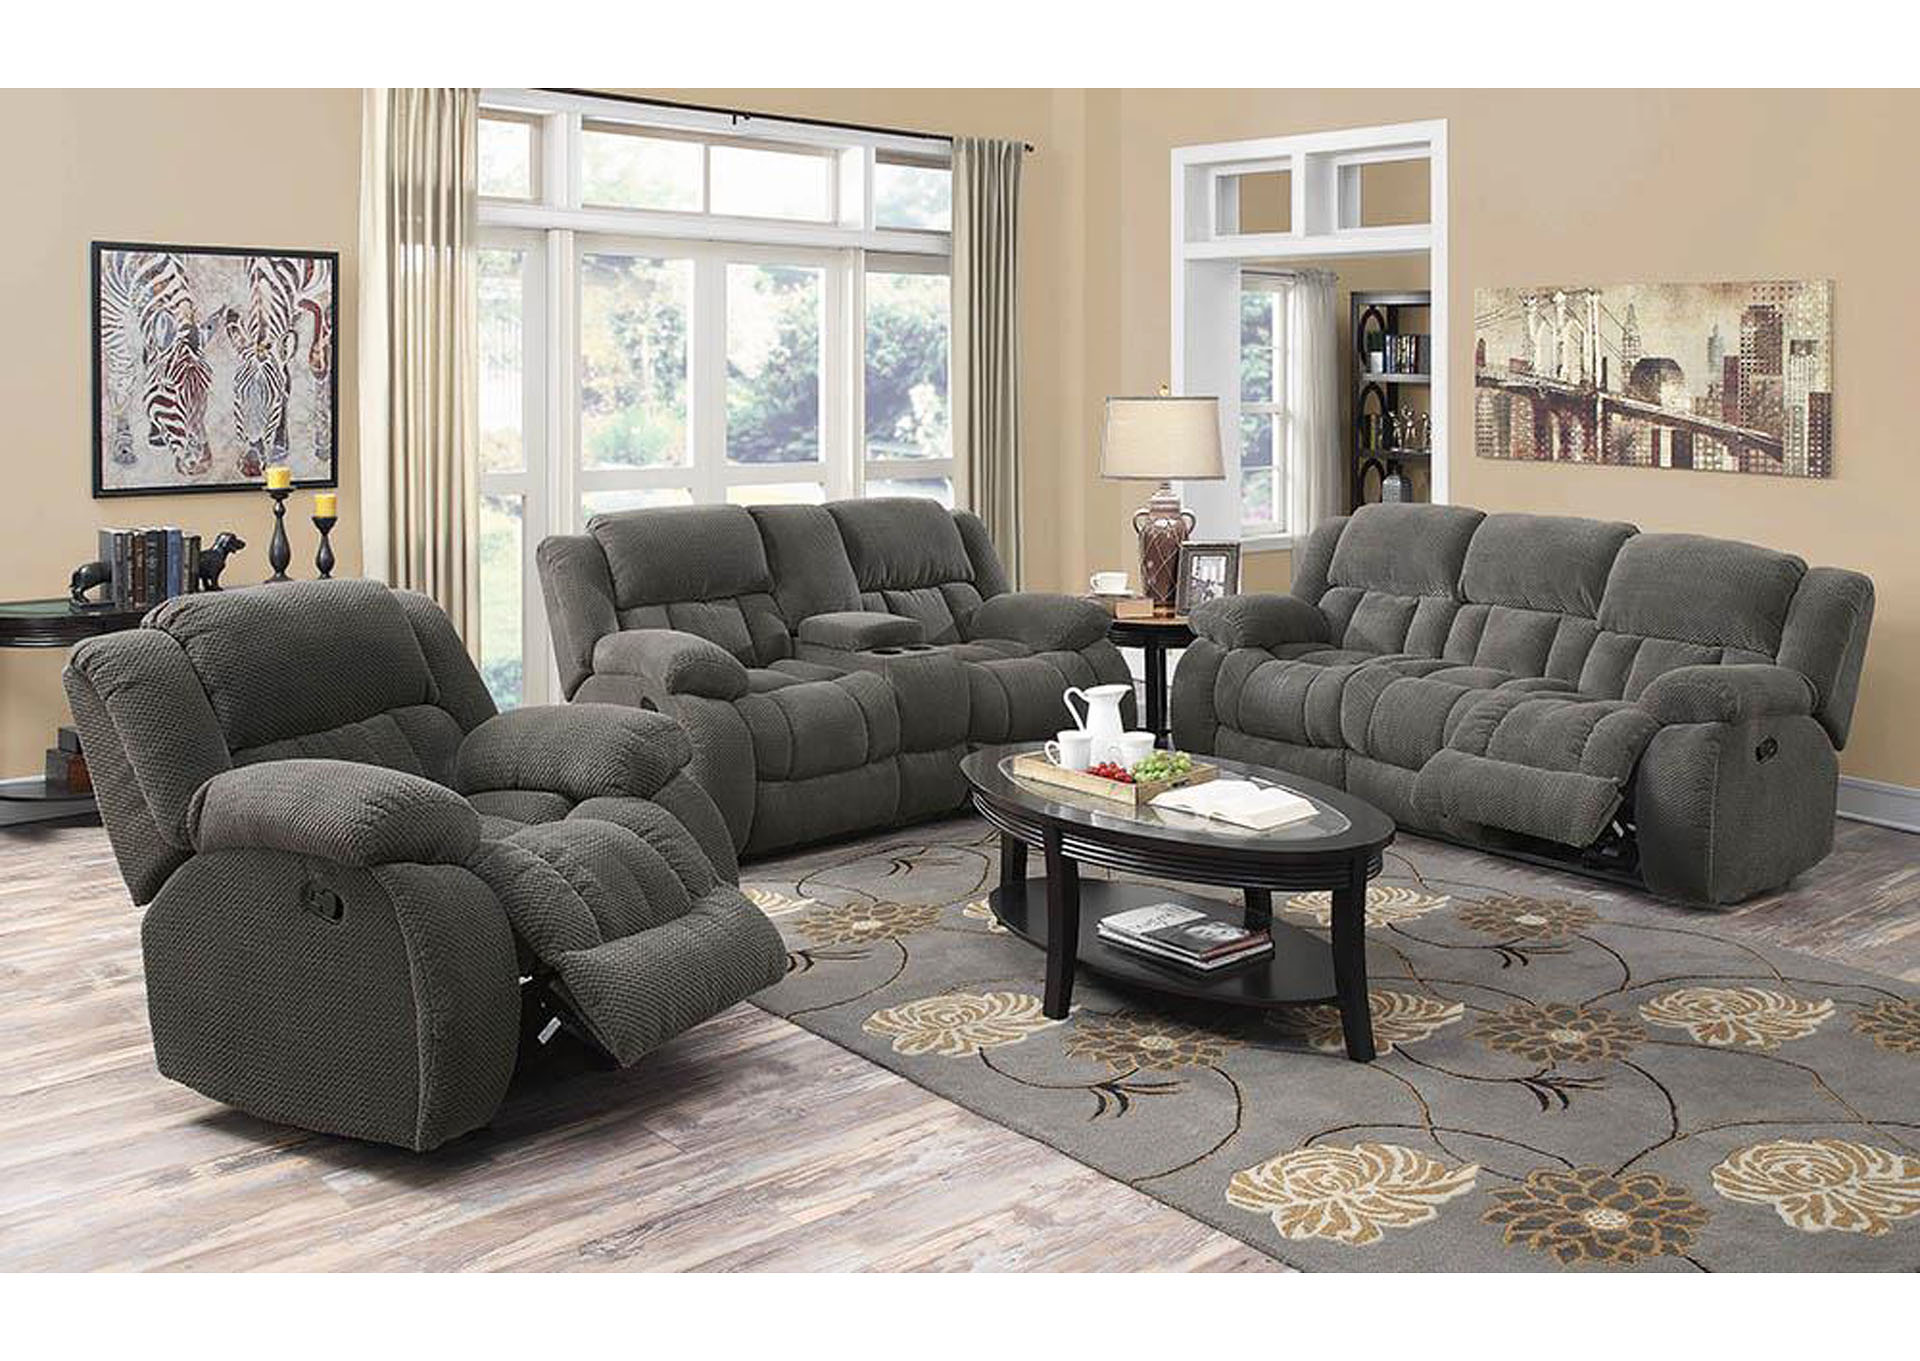 Weissman Grey Reclining Sofa,Coaster Furniture